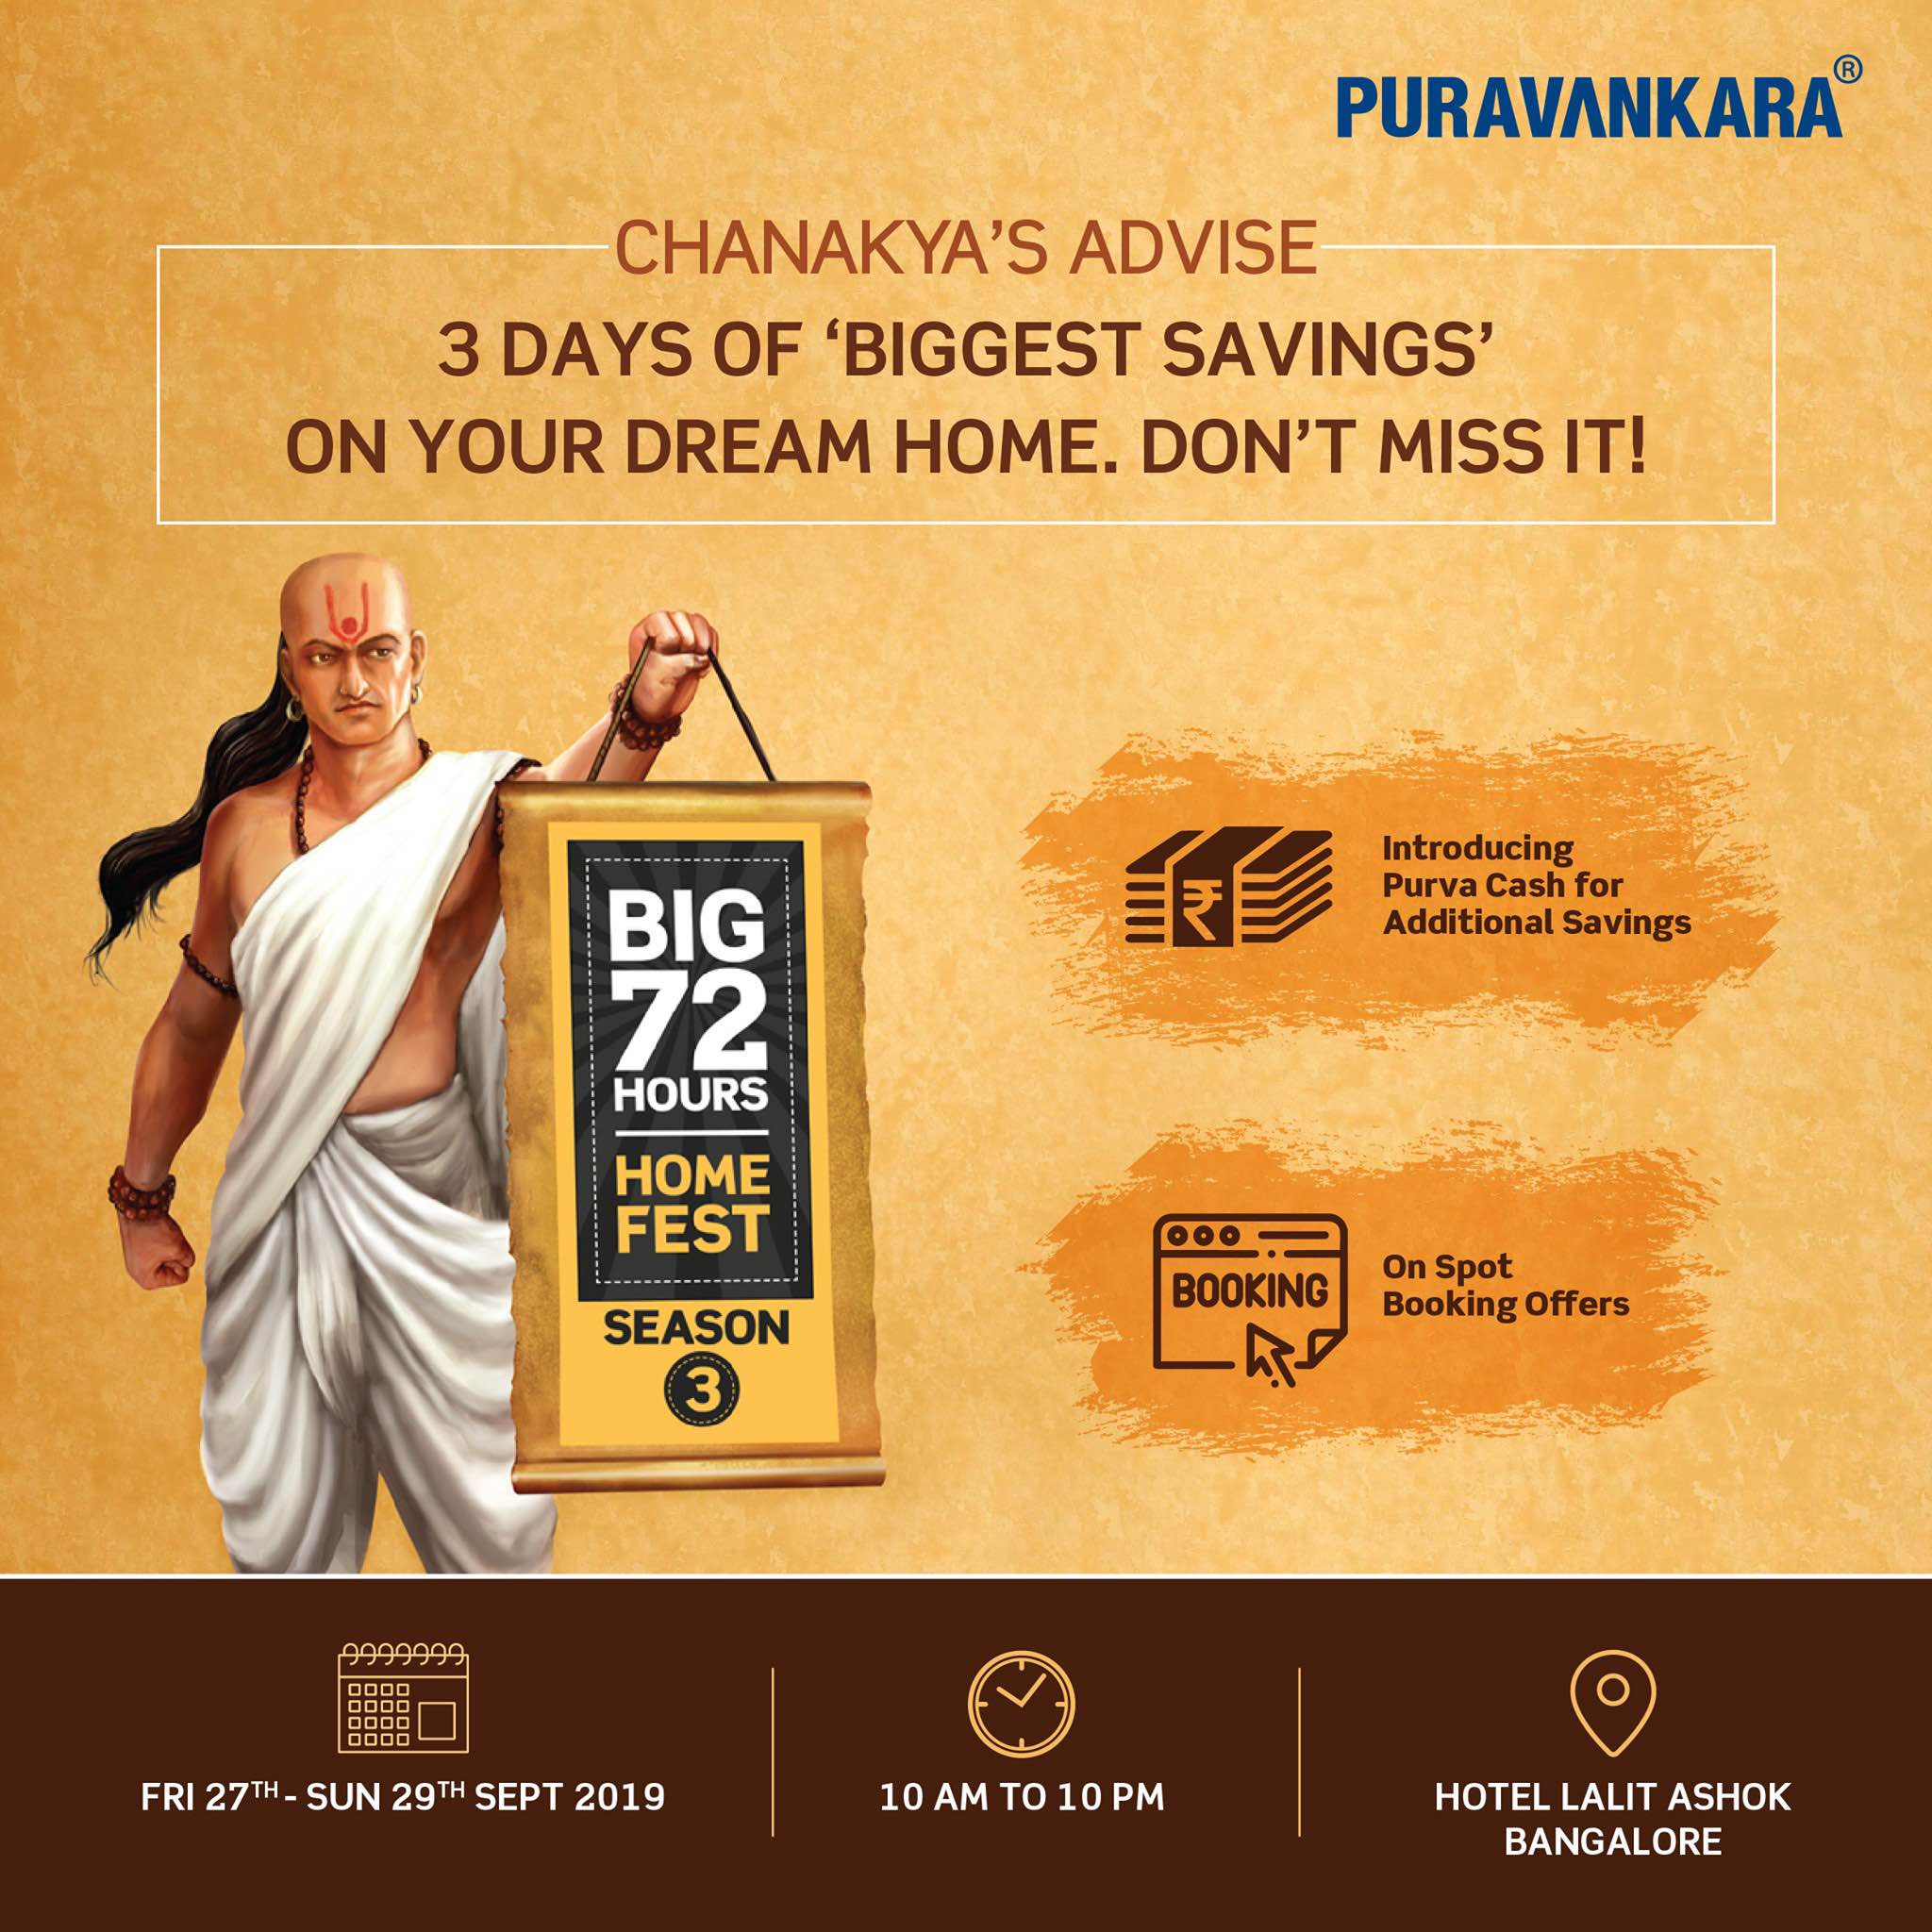 Puravankara Big 72 Hours Home Fest on 27 29 Sept 2019 in Bangalore